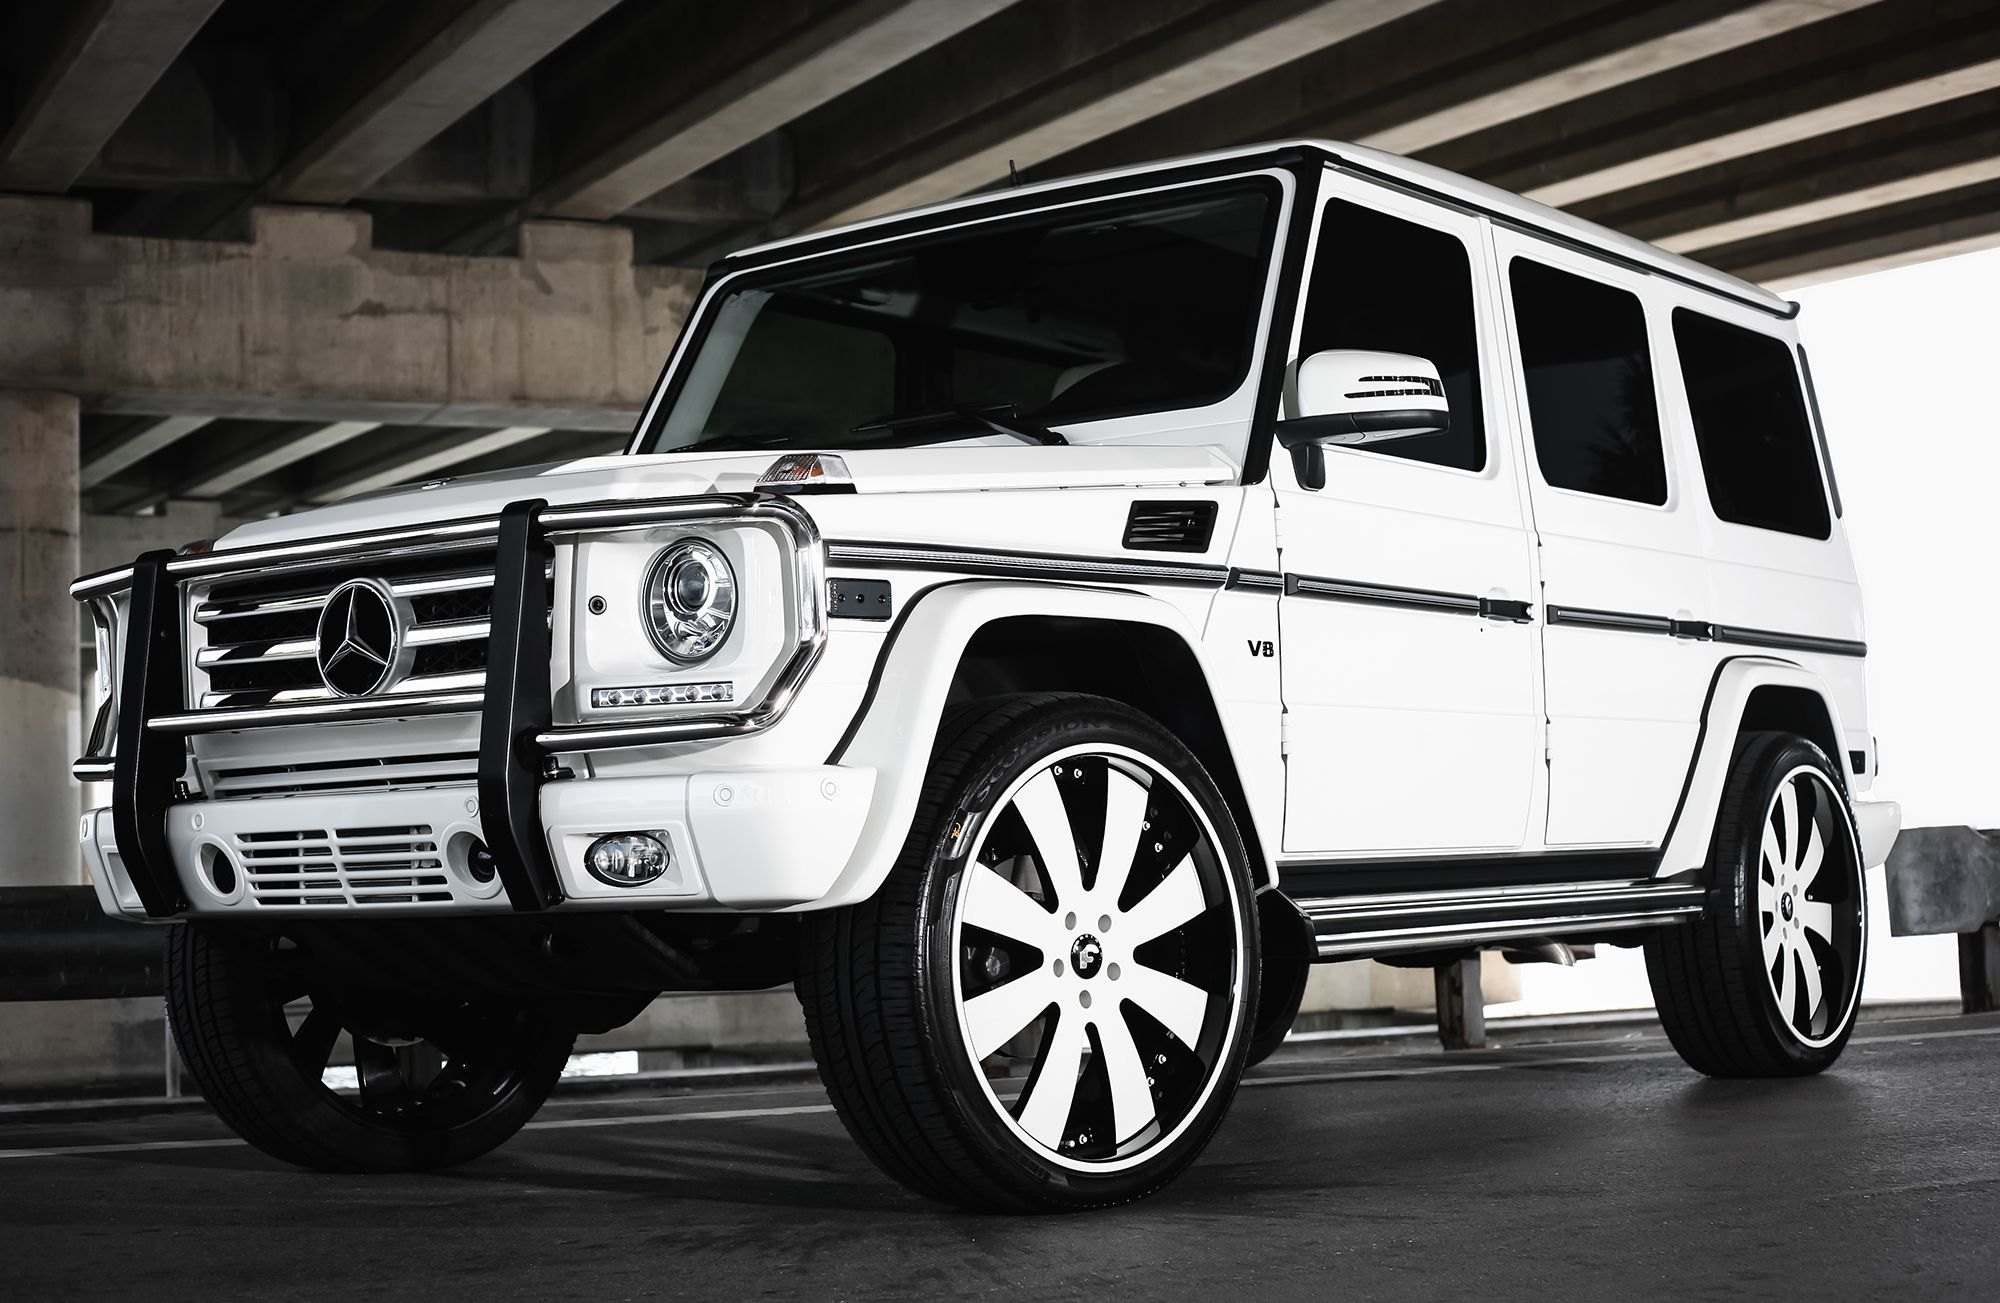 mercedes matte black g wagon - Google Search | Cars ...